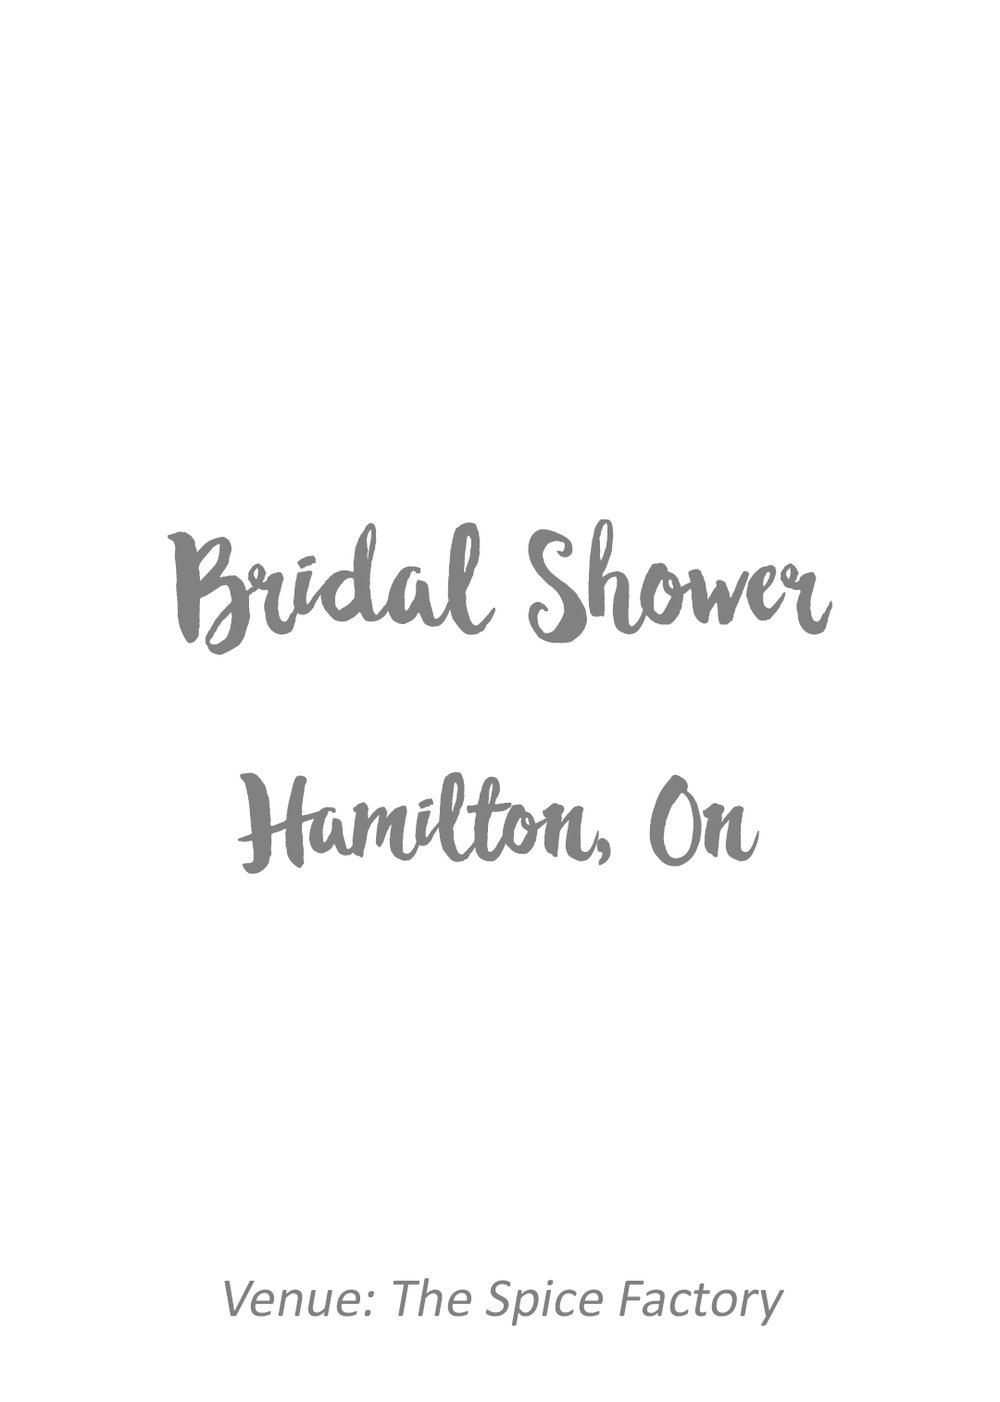 bridalshowertitle.jpg